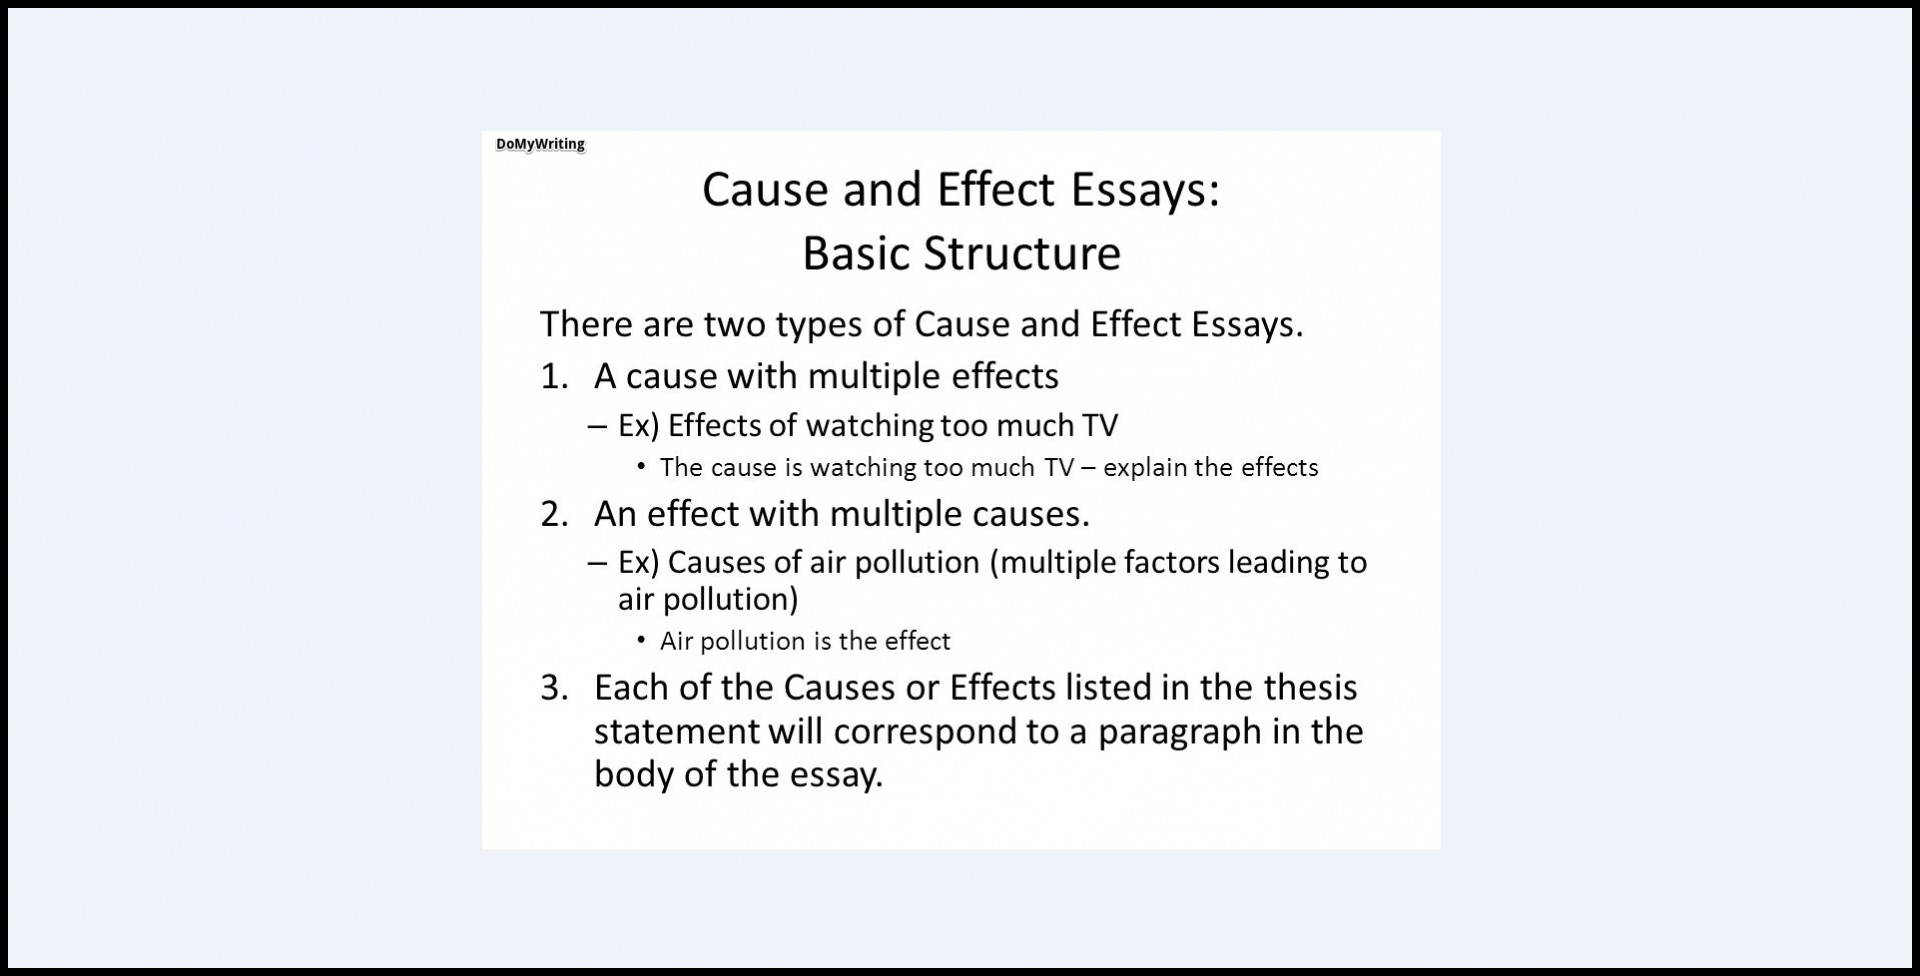 017 Essay Topics Cause And Effect Structure Archaicawful For High School English Schoolers Grade 8 1920